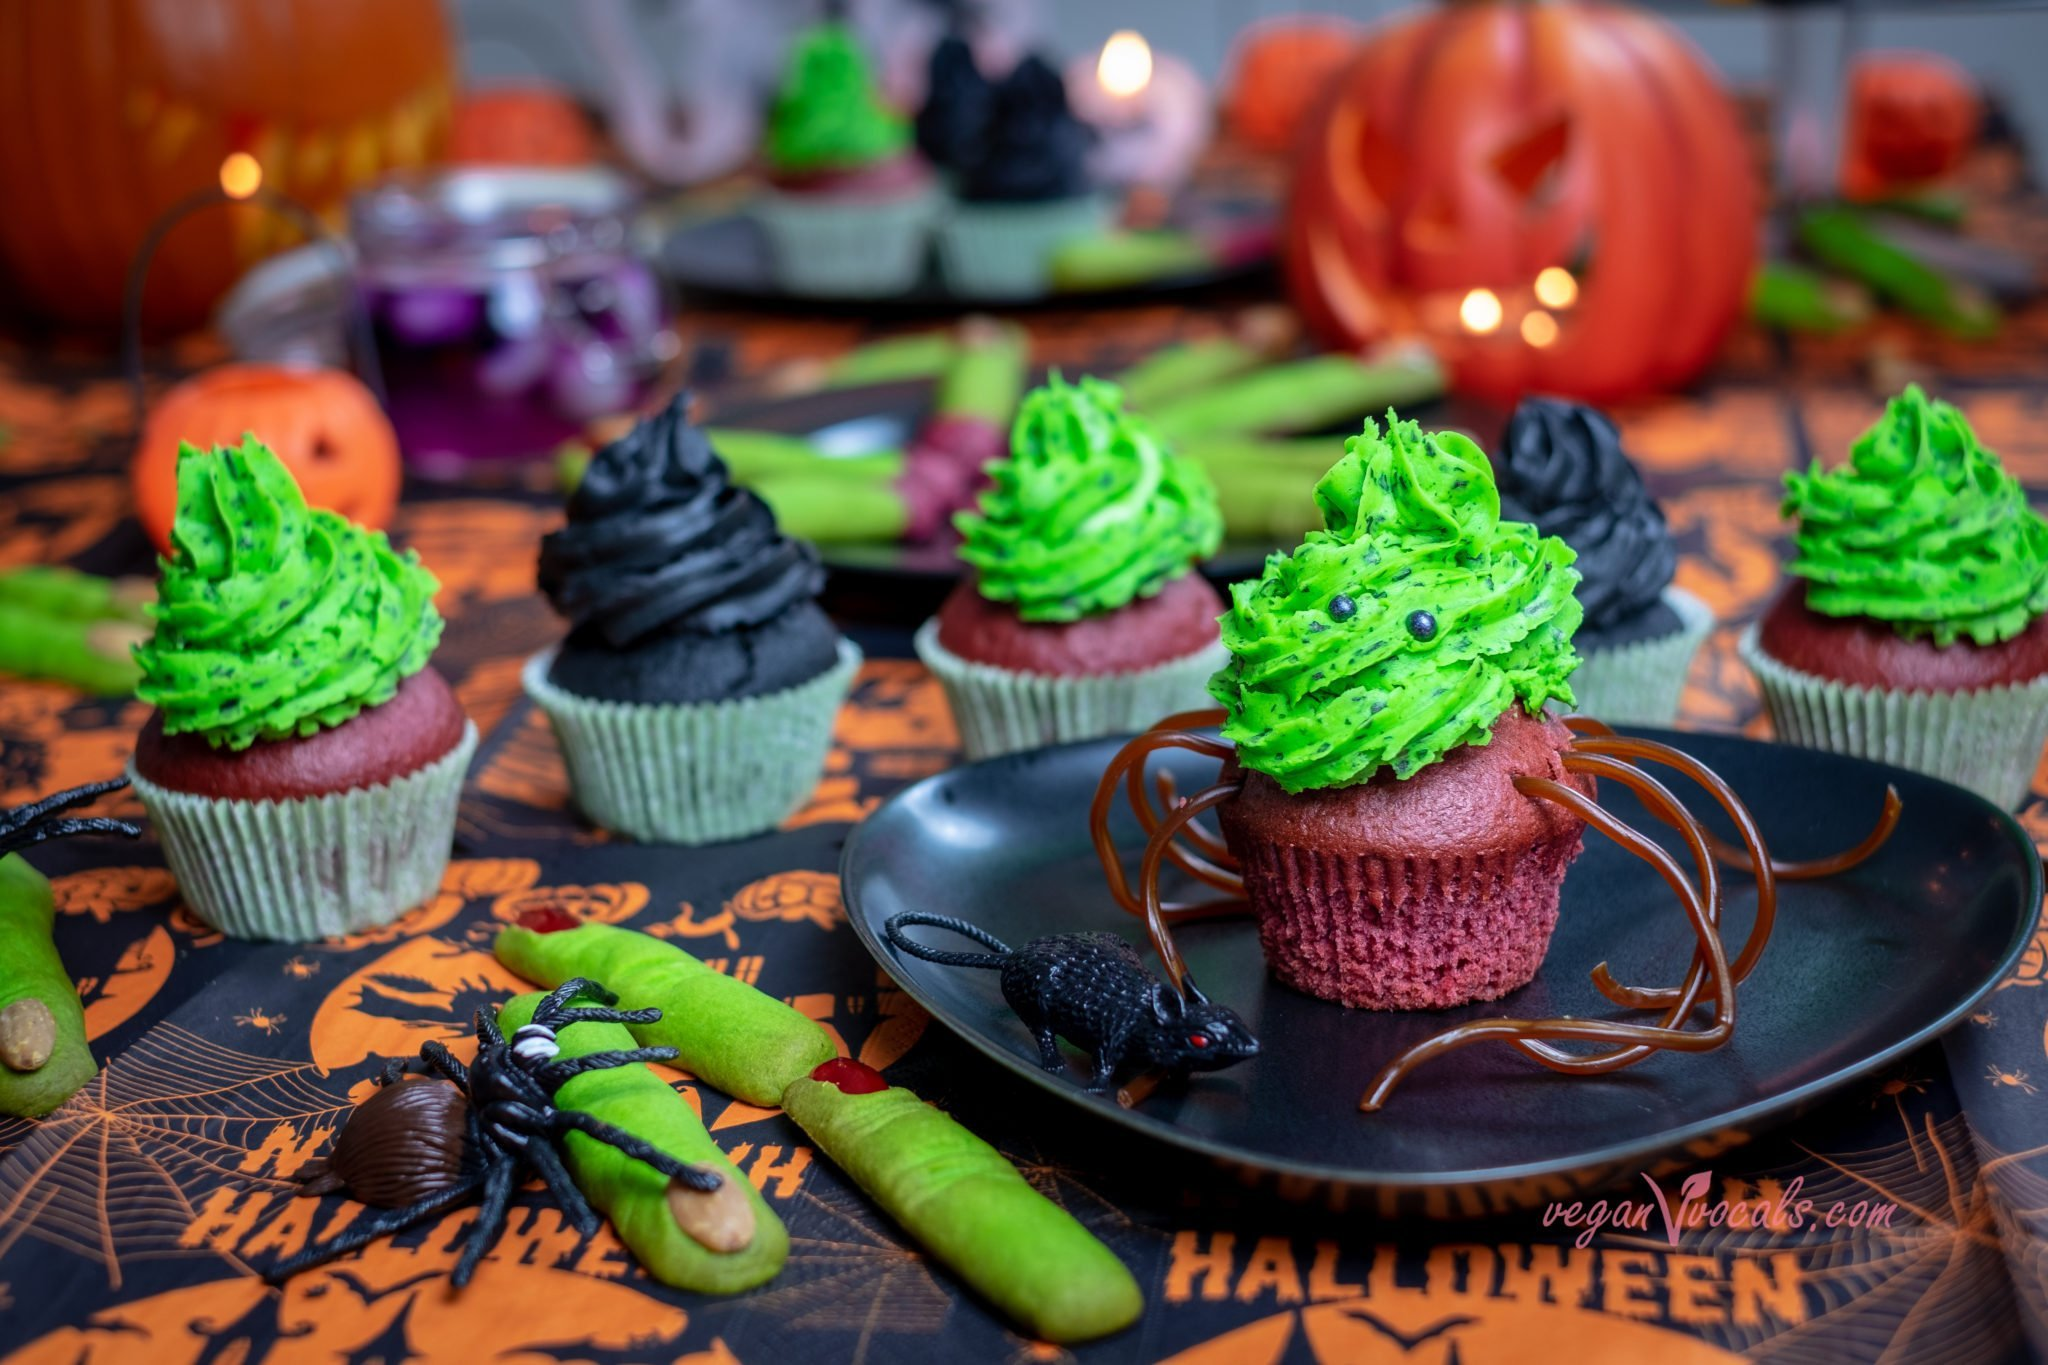 Halloween Red Strawberry Vegan Cupcakes w/ Gut-sy Basil flavoured inside